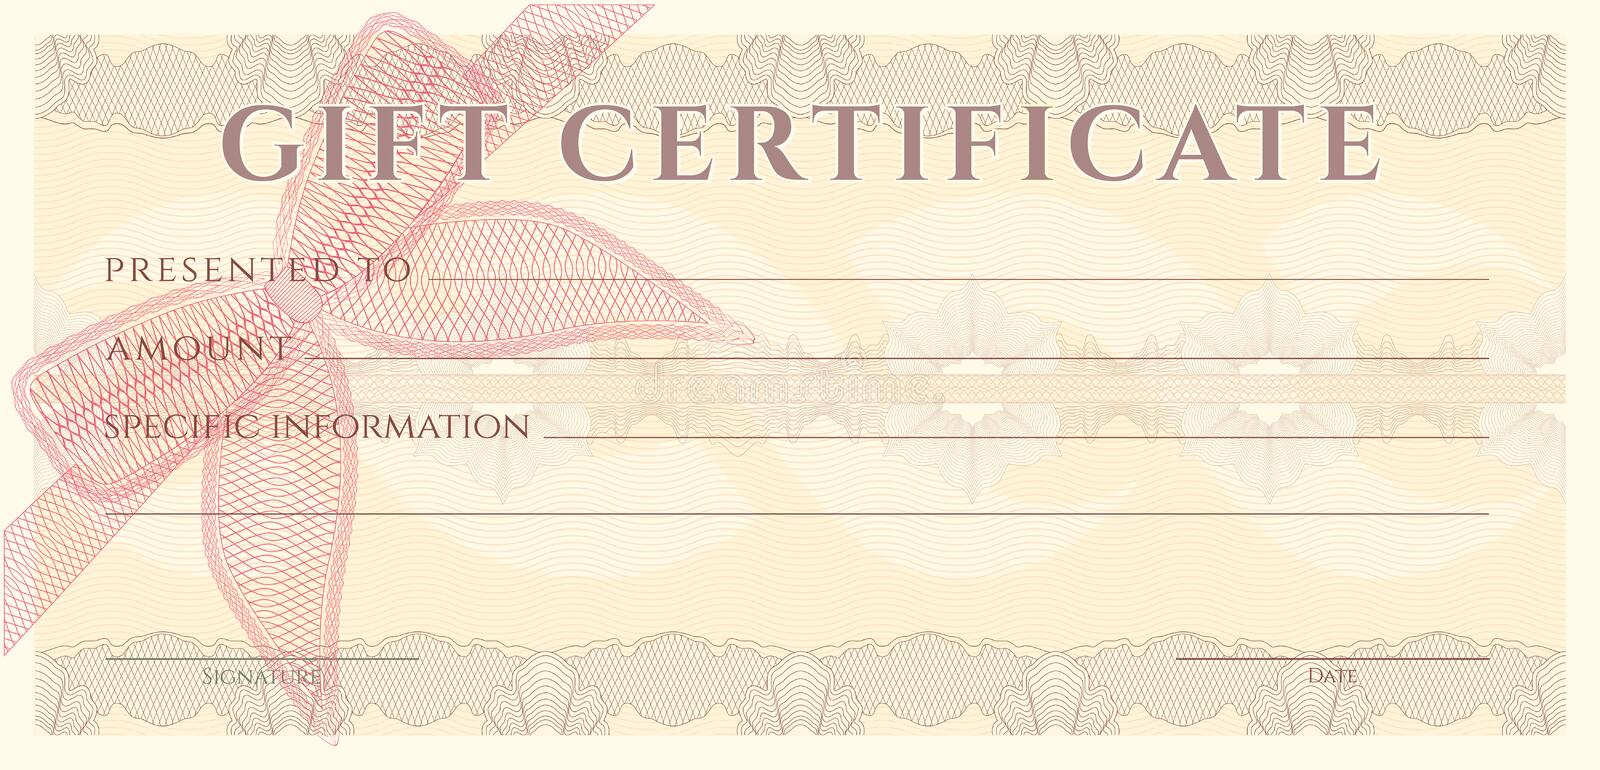 Voucher gift certificate coupon ticket template for Cheque voucher template